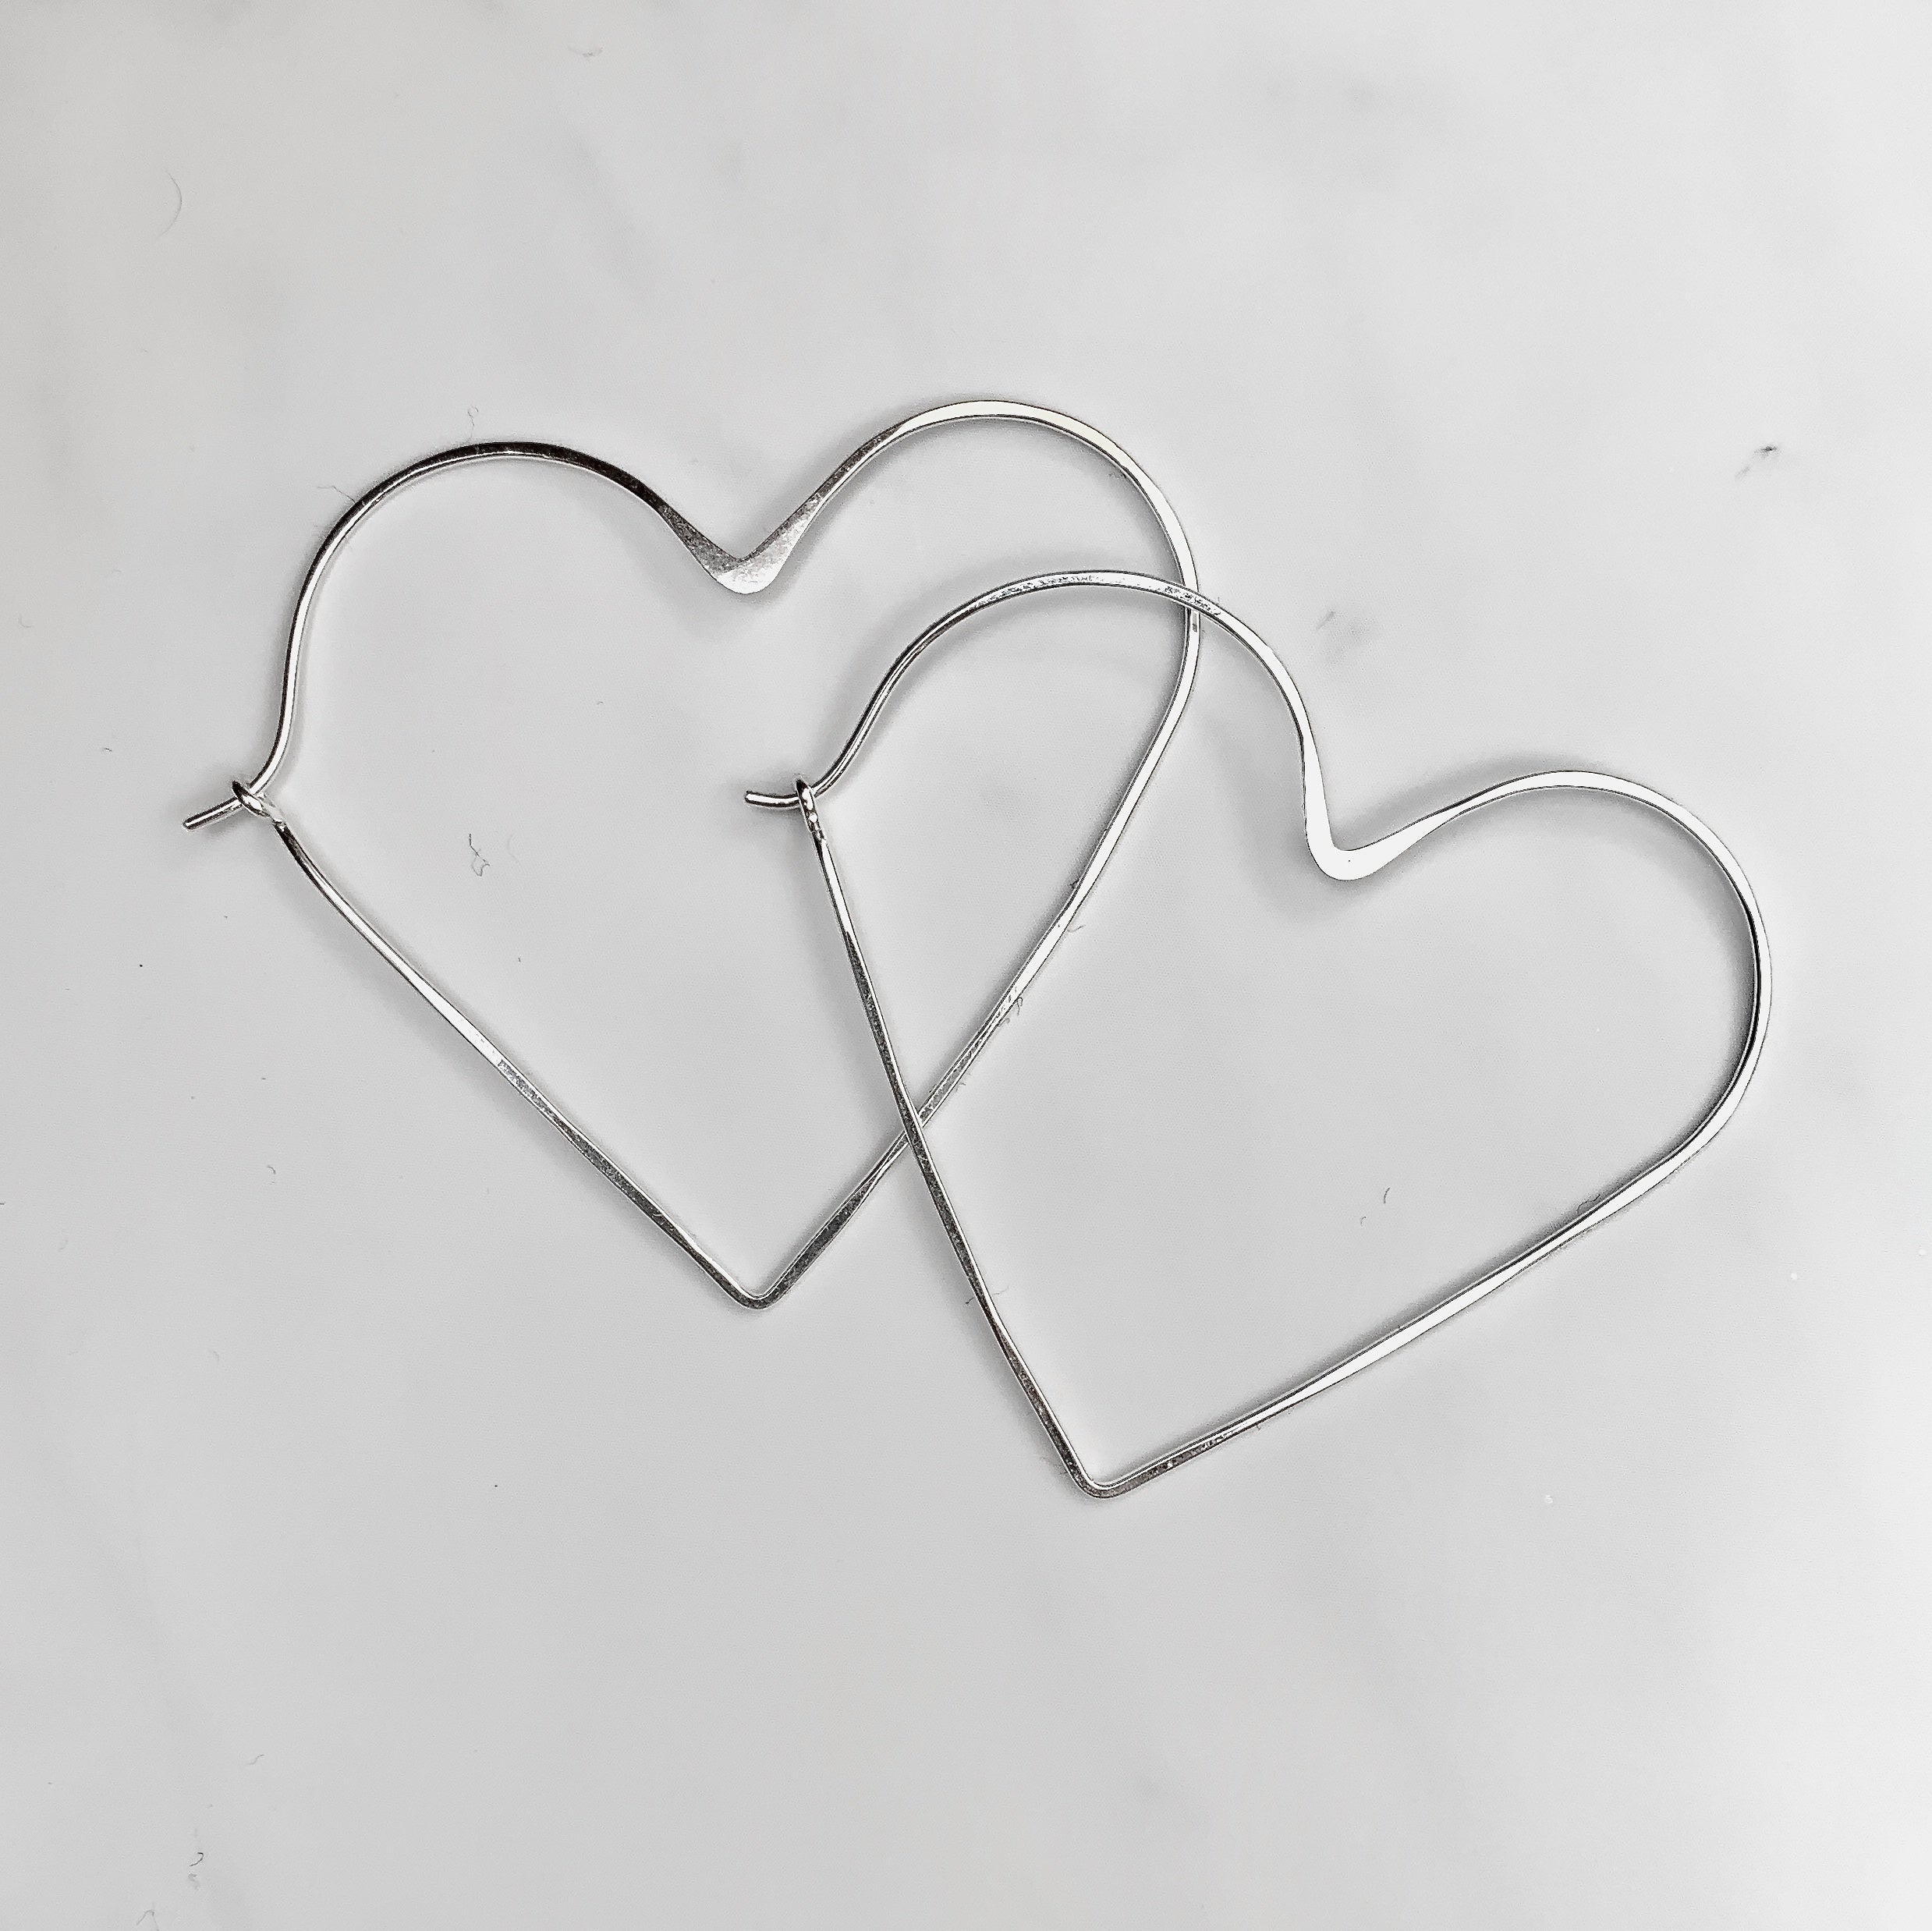 One (1) Silver Heart Hoop